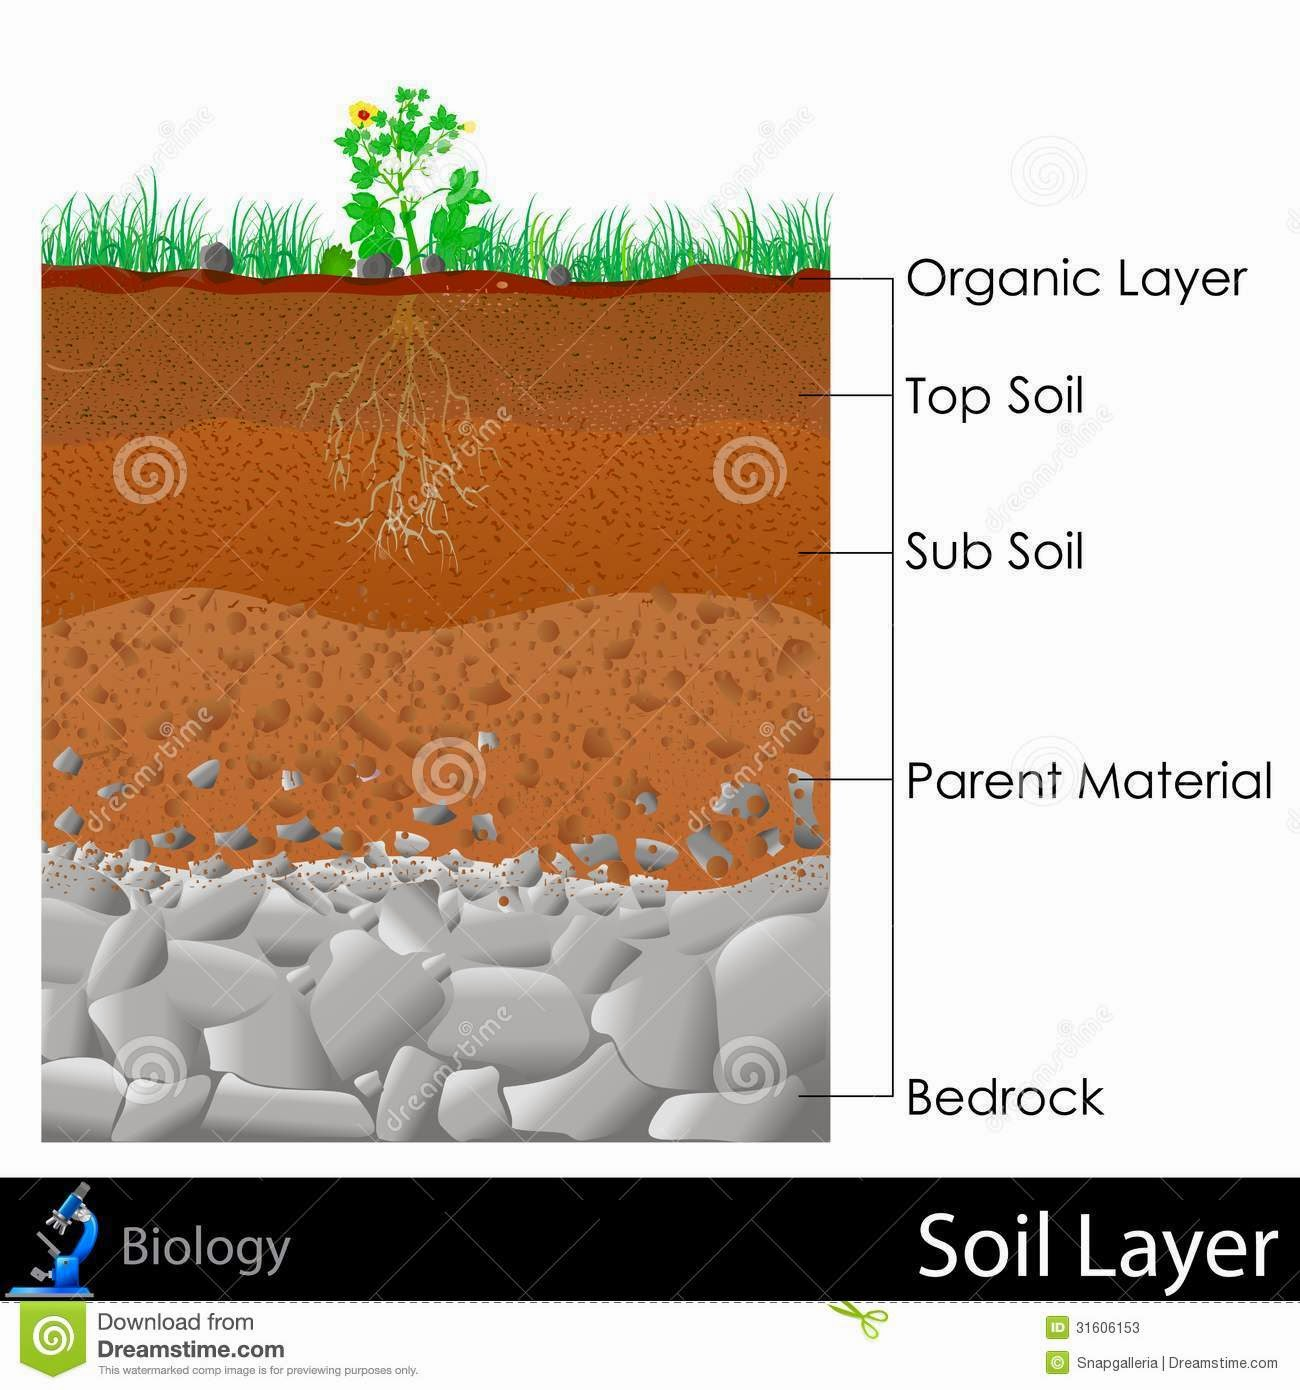 Team Tipuranga Soil Layers